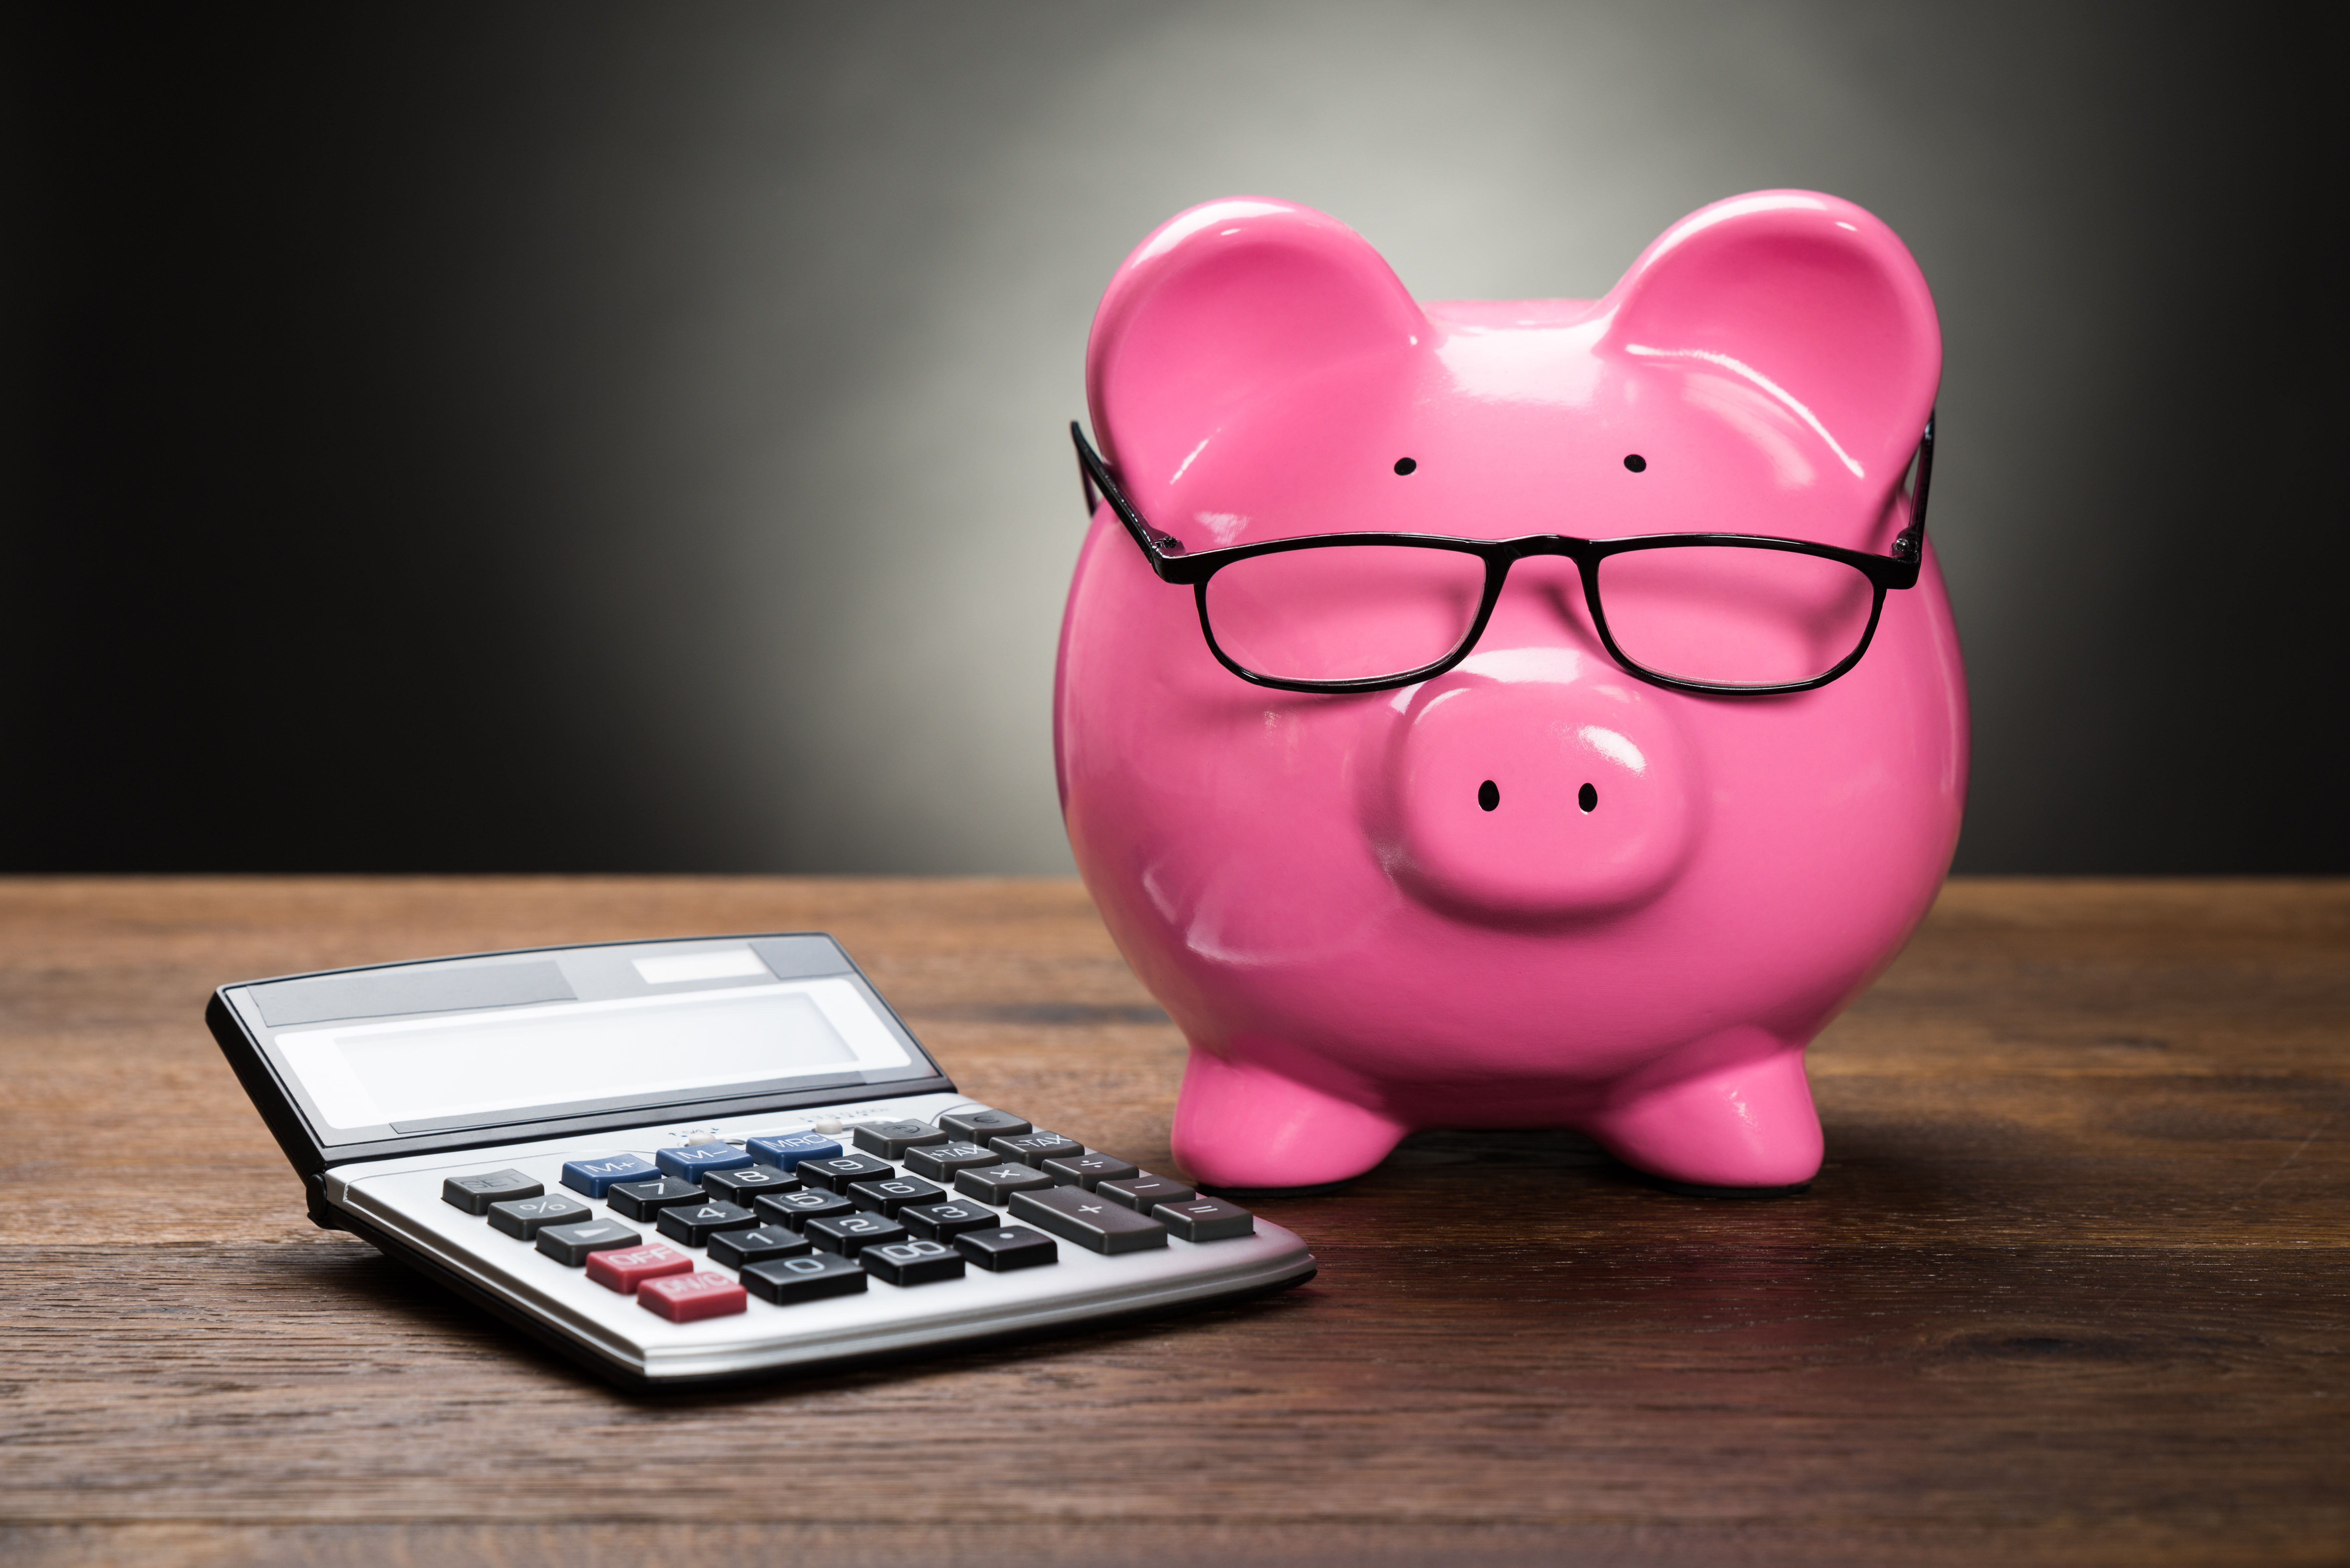 Pink Piggybank With Calculator On Wooden Table